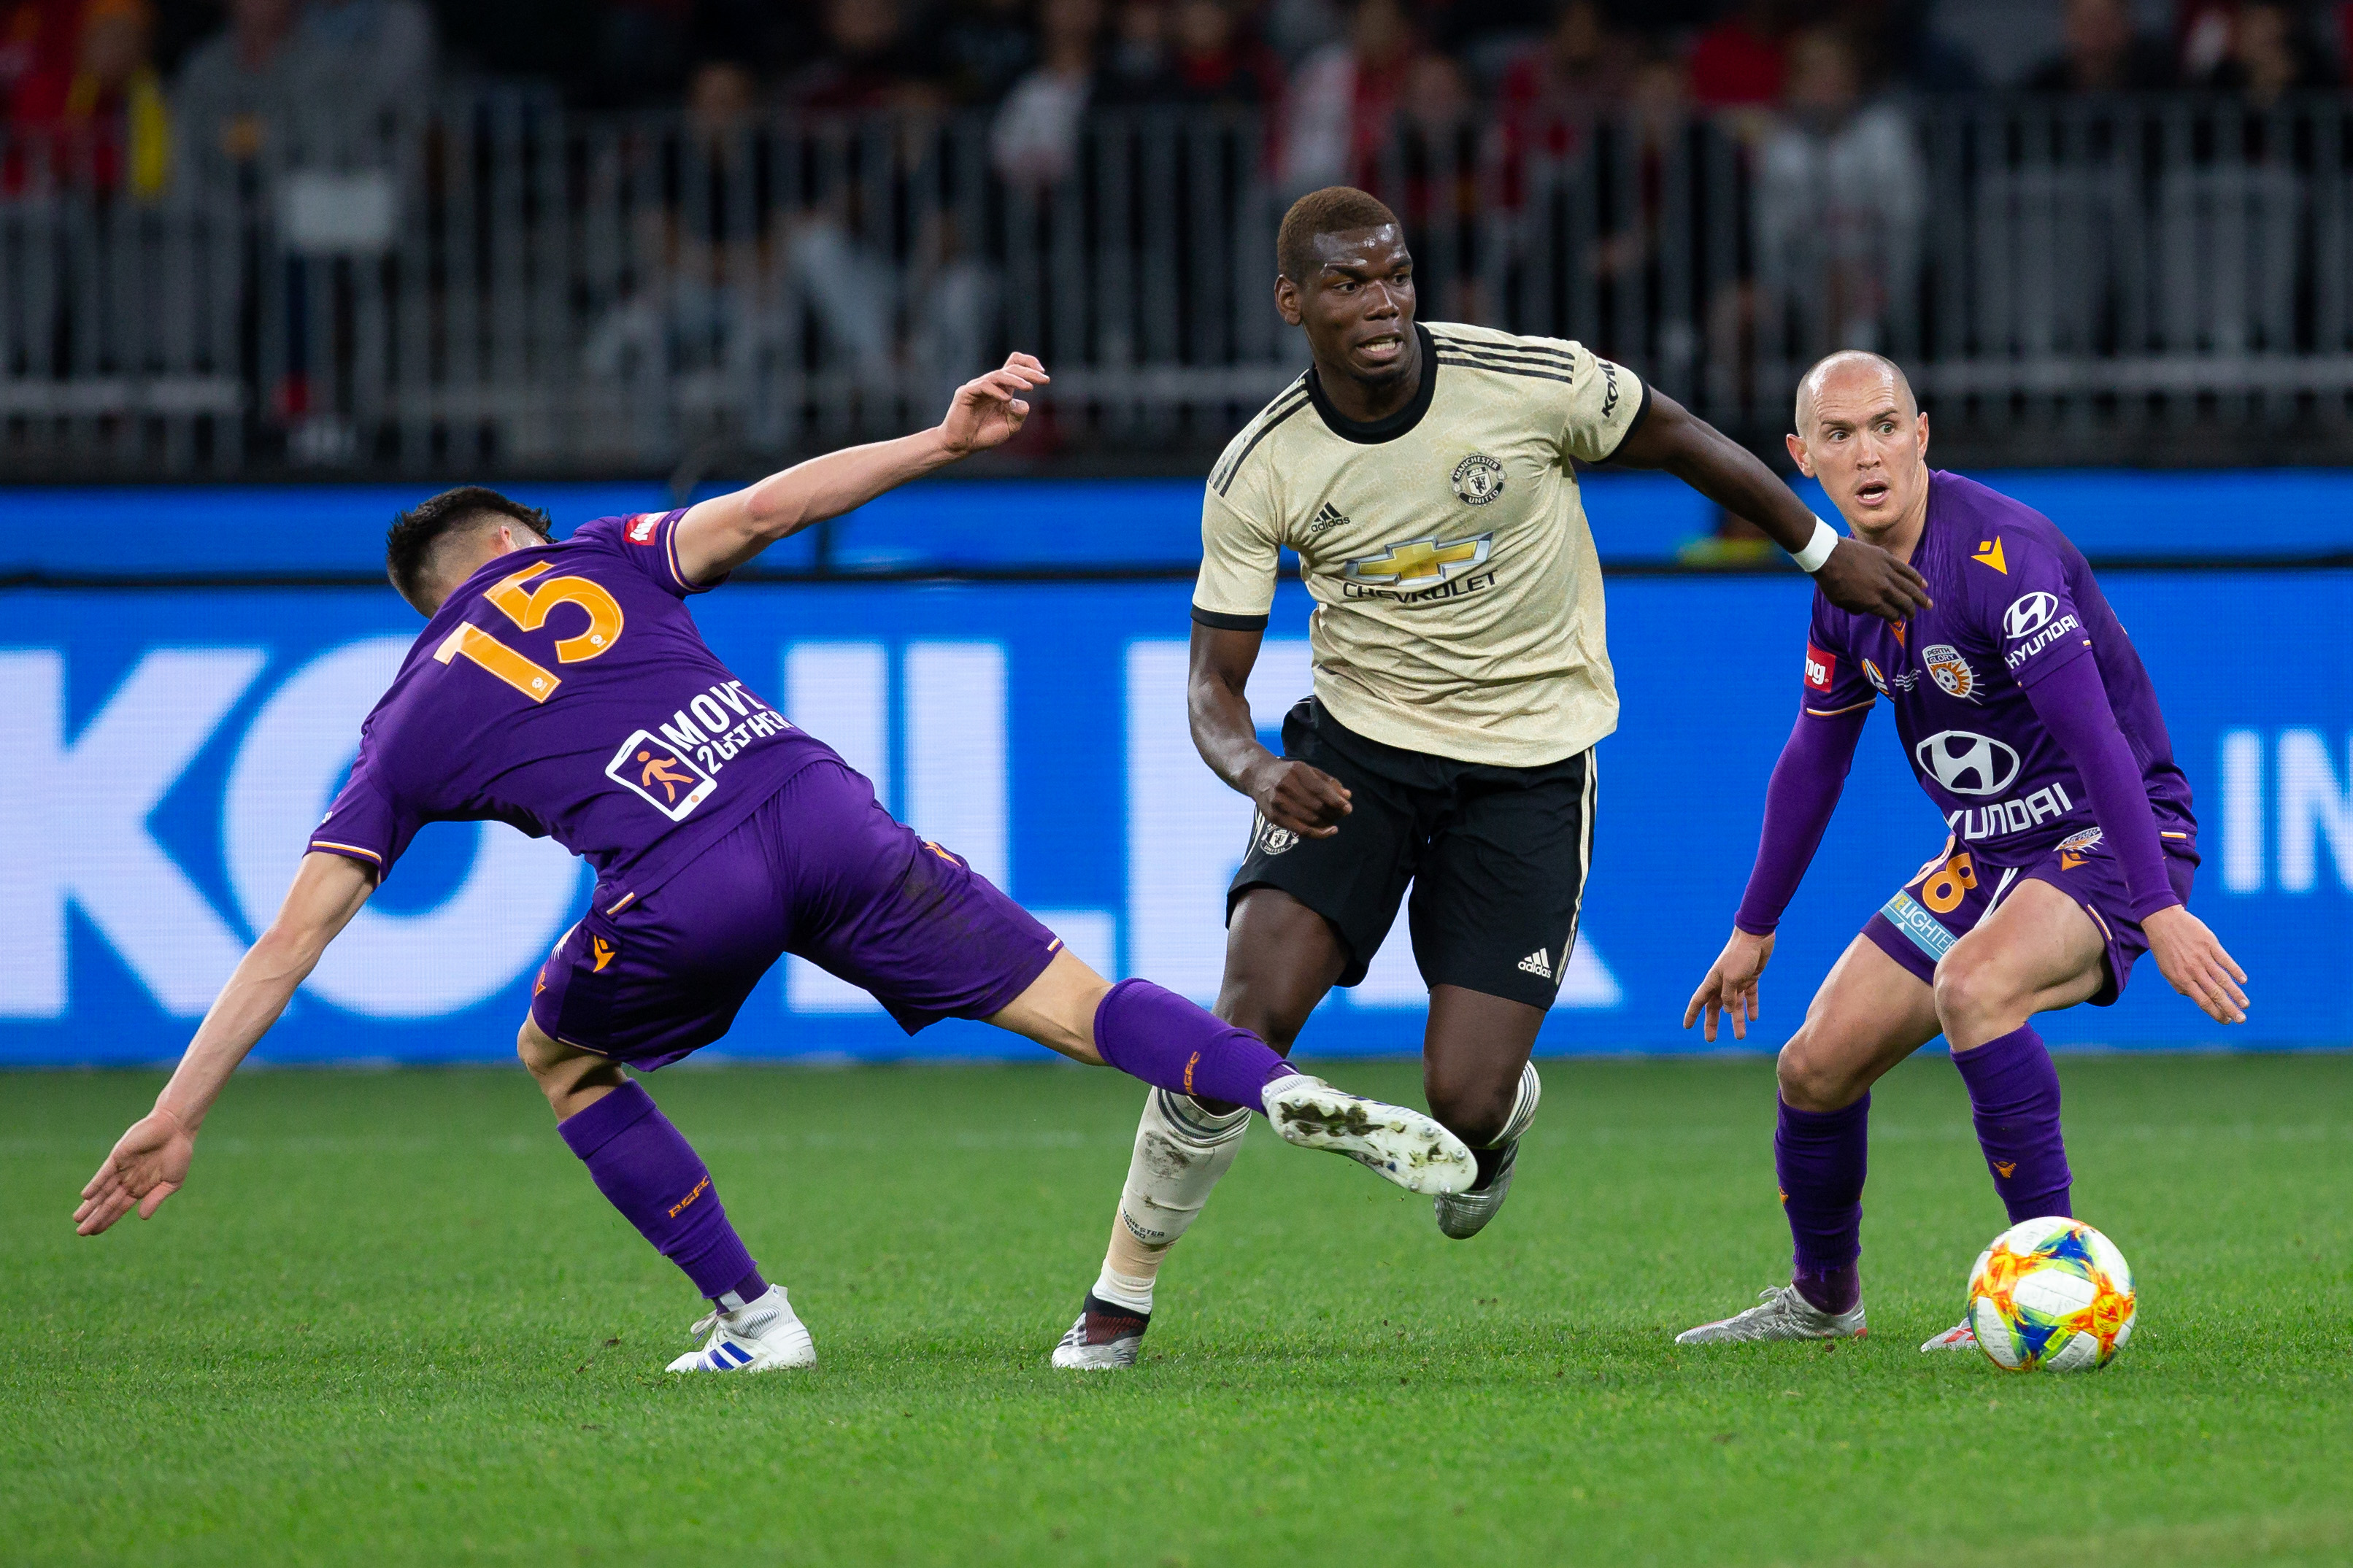 SOCCER: JUL 13 International - Manchester United at Perth Glory